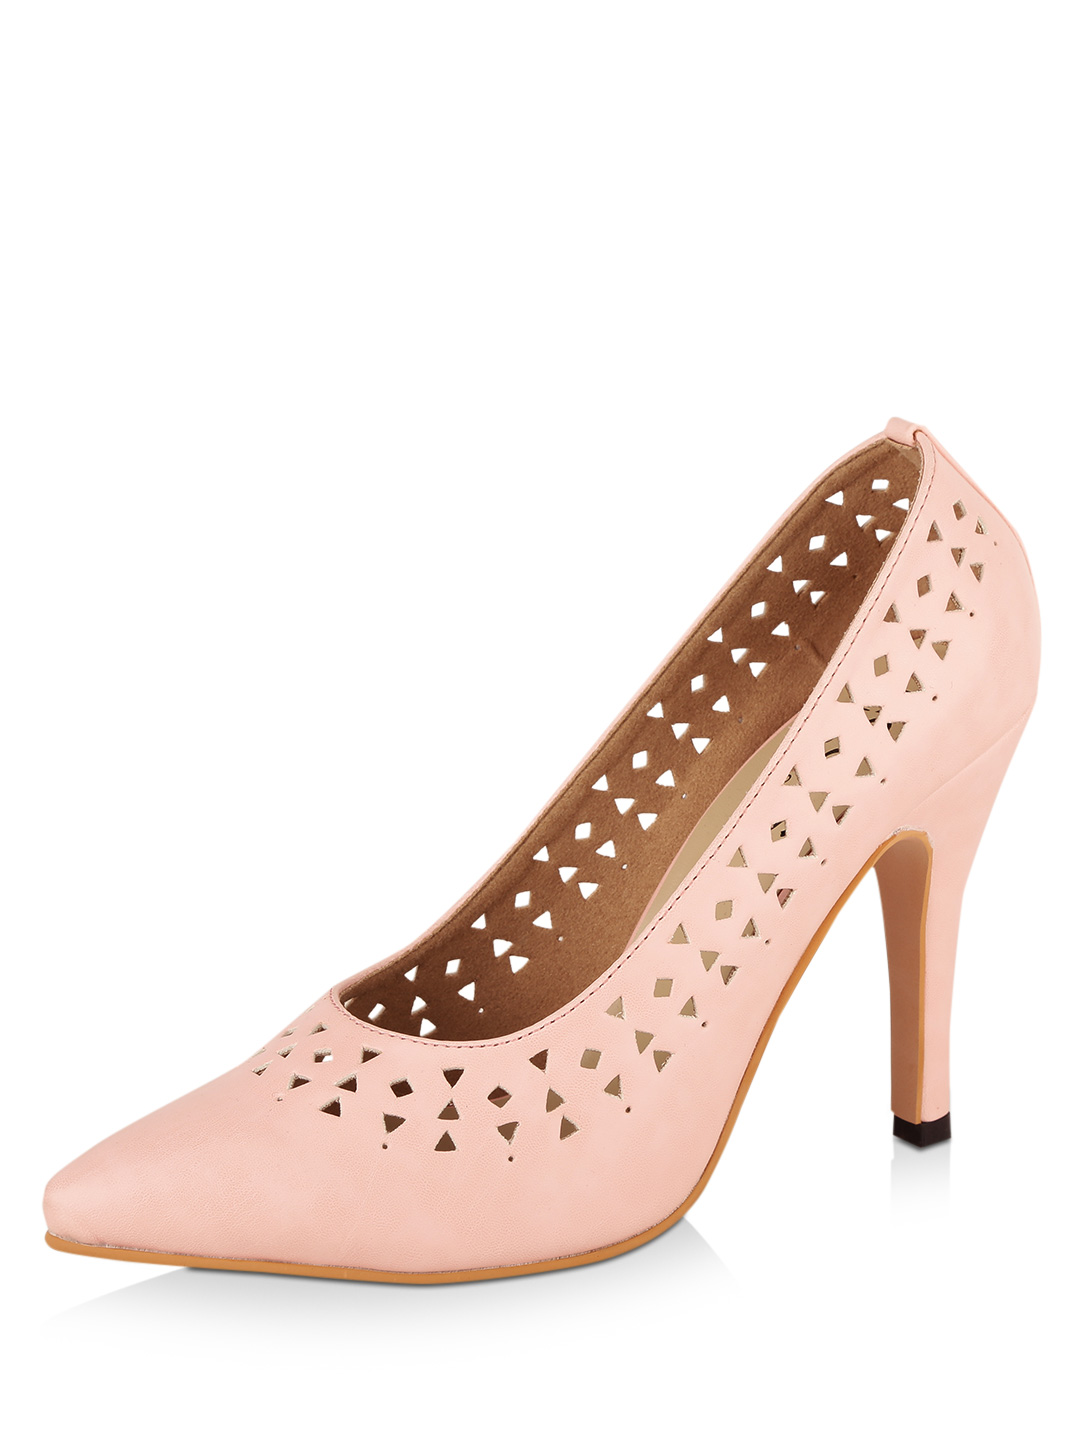 KOOVS Pink Lasercut Pointed Court Shoes 1